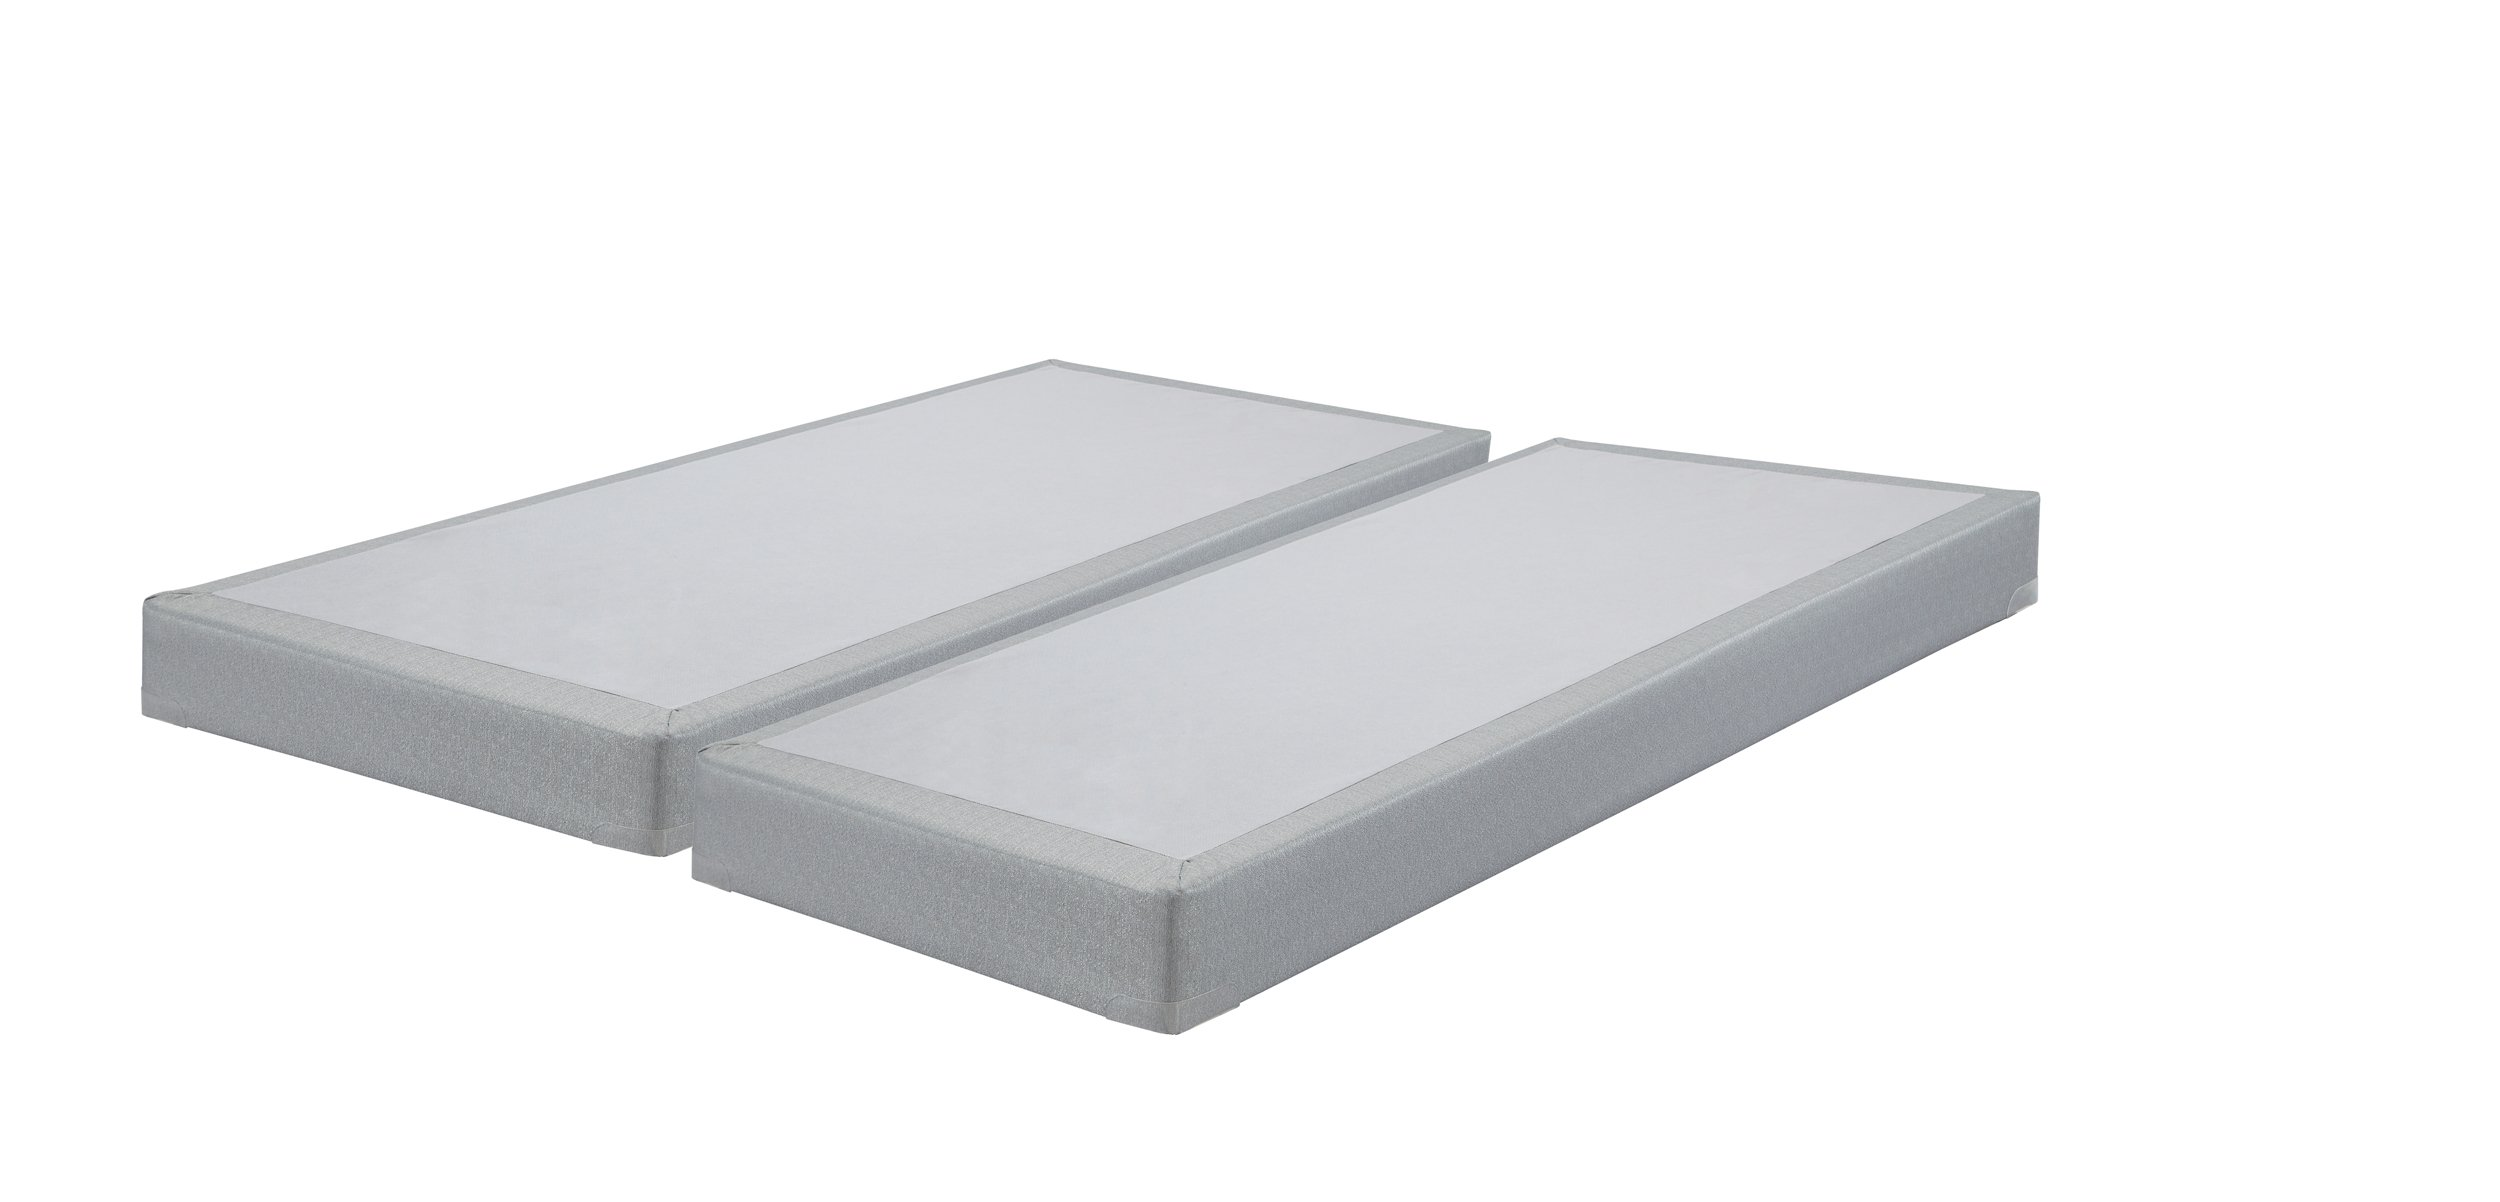 Ashley Furniture Signature Design - Ashley Sleep - Low Profile - Contemporary King Size Mattress Foundation - Gray